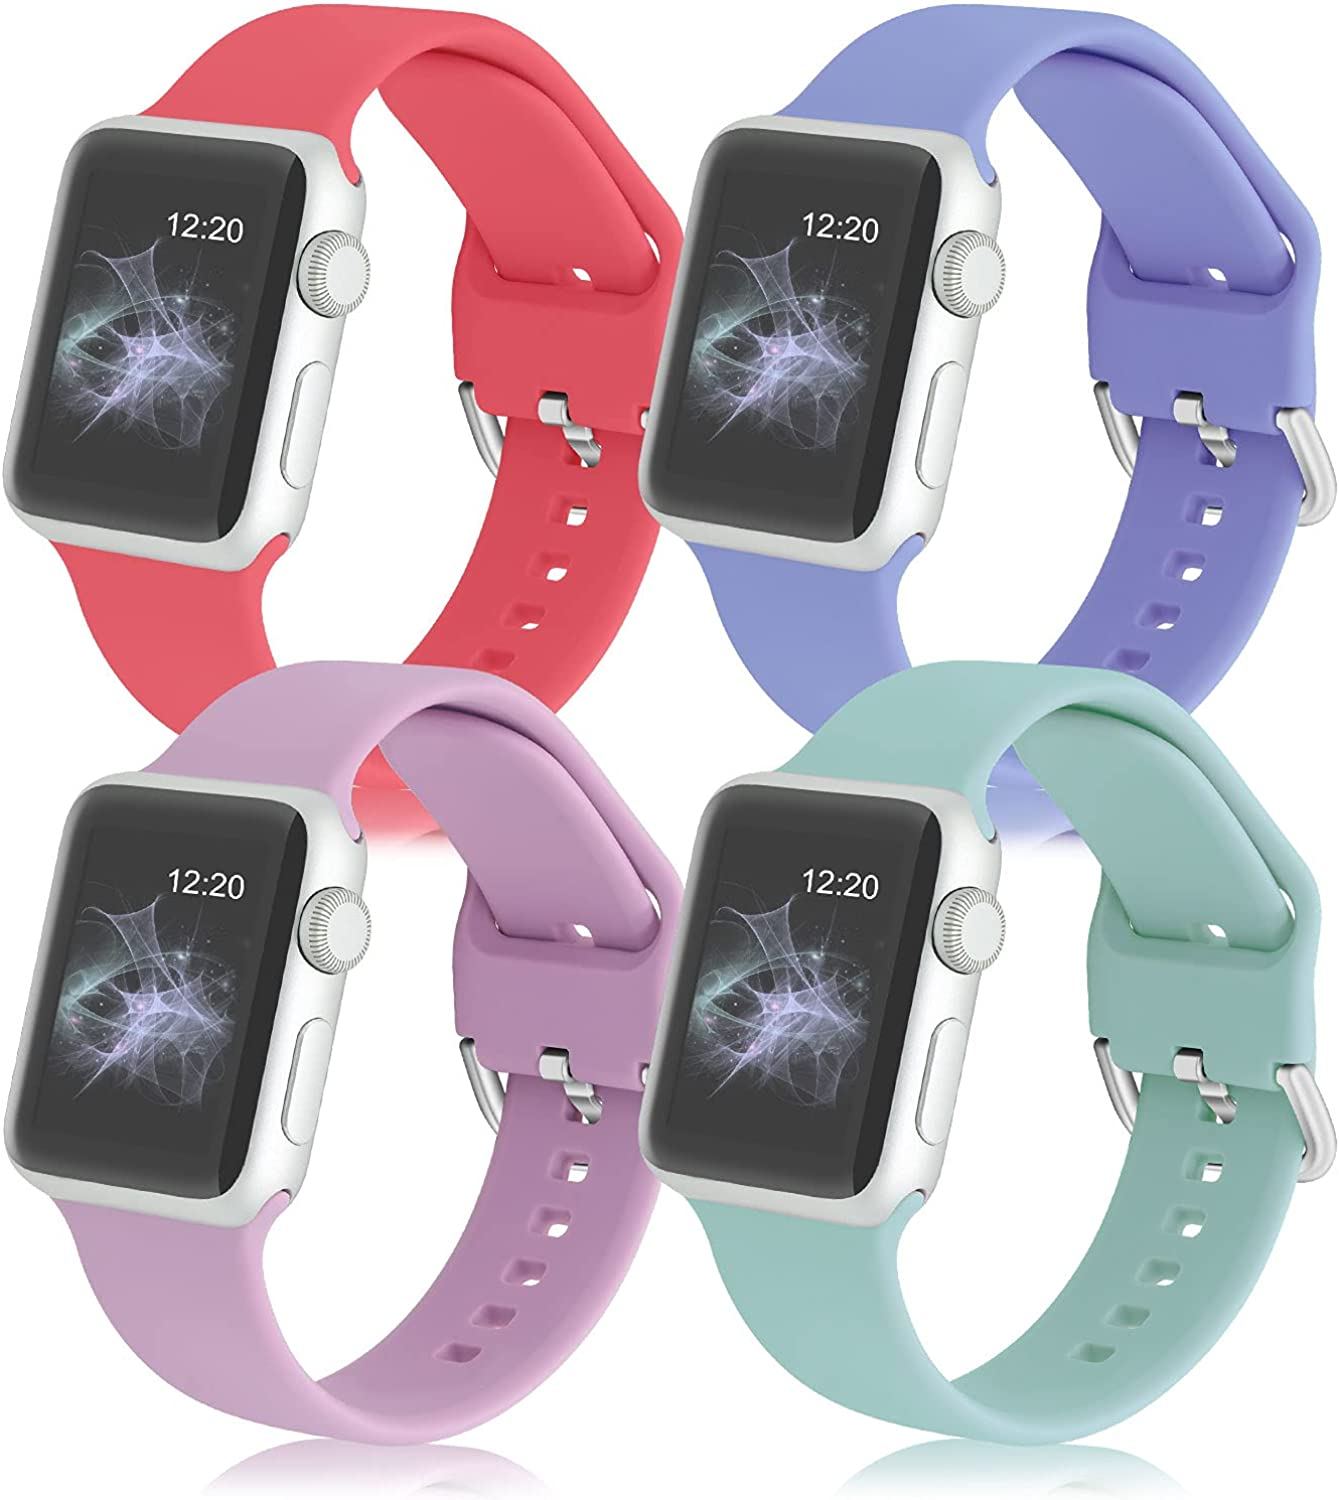 XVGJDZ 4PCS Compatible with Apple Watch Bands 38mm 42mm 40mm 44mm for Women Men,Soft Silicone Sport Wristband for Watch Series 6/5/4/3/2/1/SE